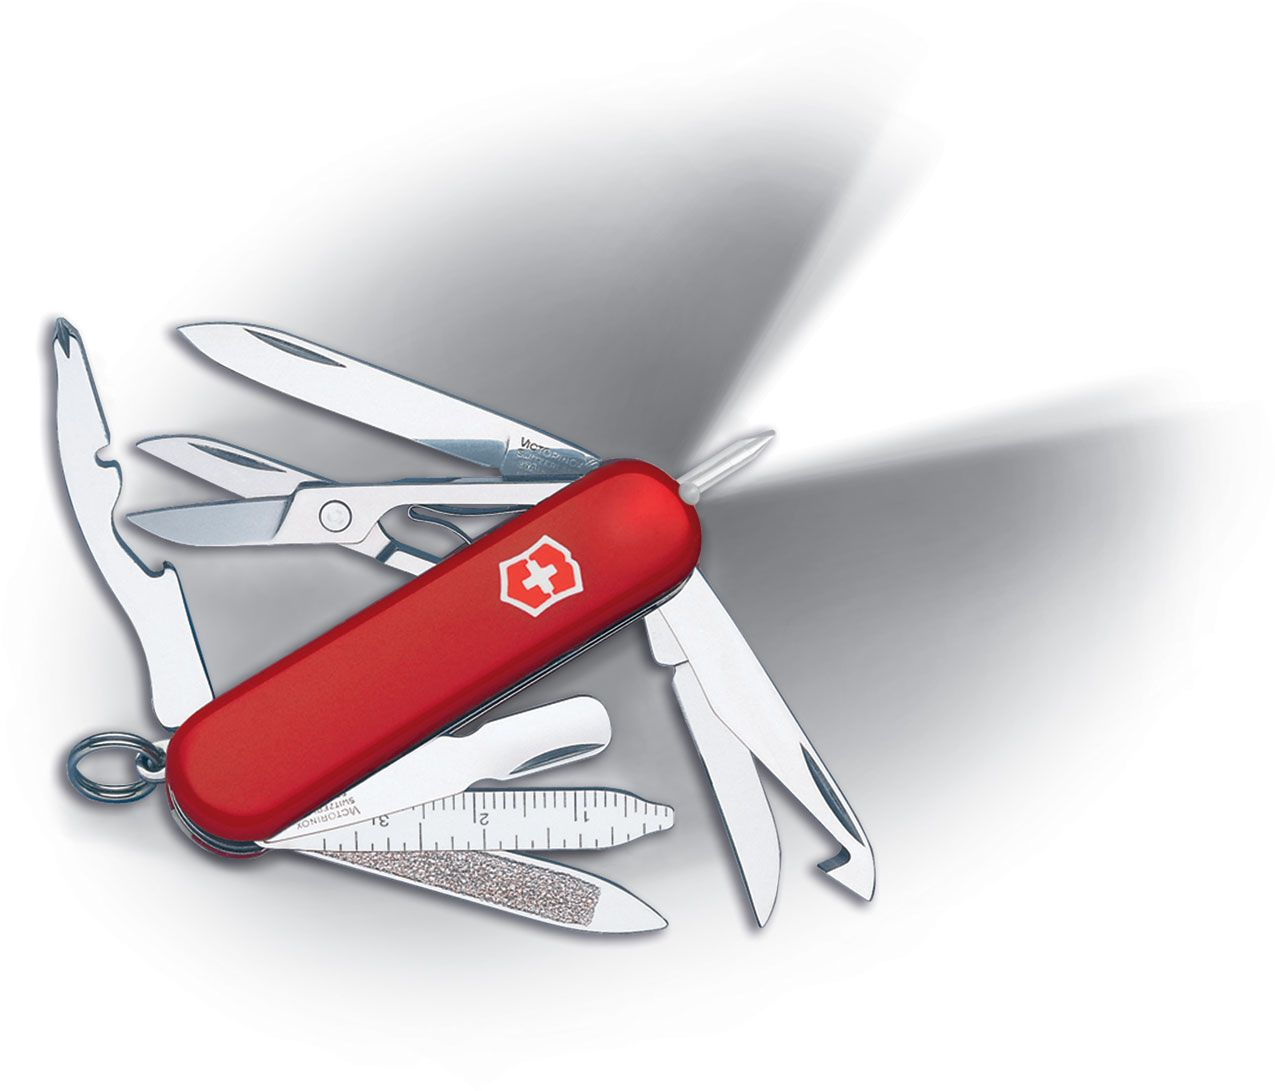 Victorinox Swiss Army Midnite MiniChamp Multi-Tool with LED, Red, 2.28 inch Closed